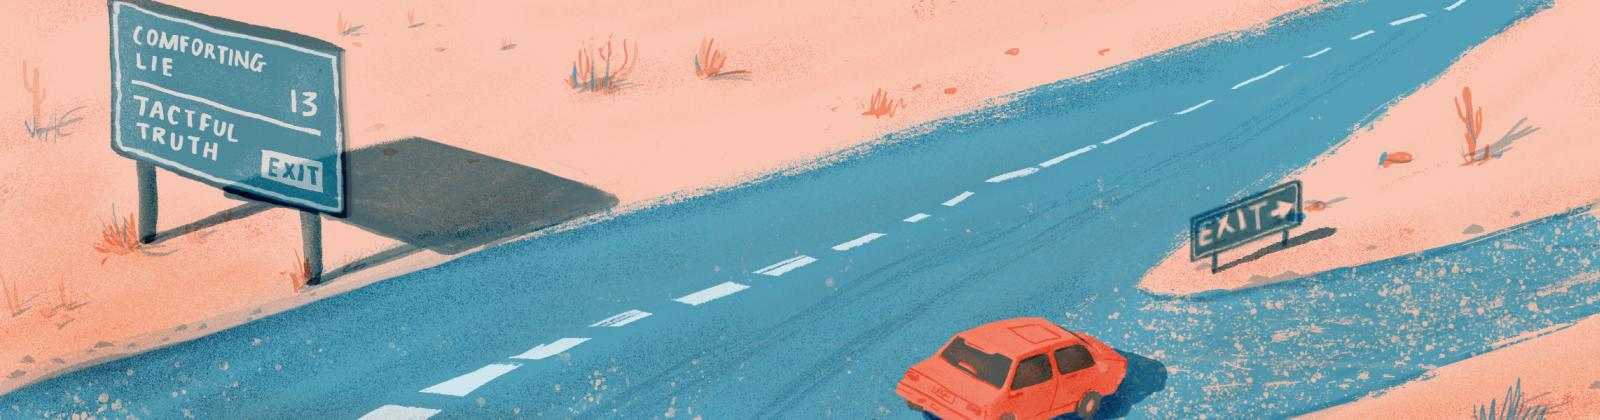 Illustration of car turning into a highway exit that leads to Tactful Truths